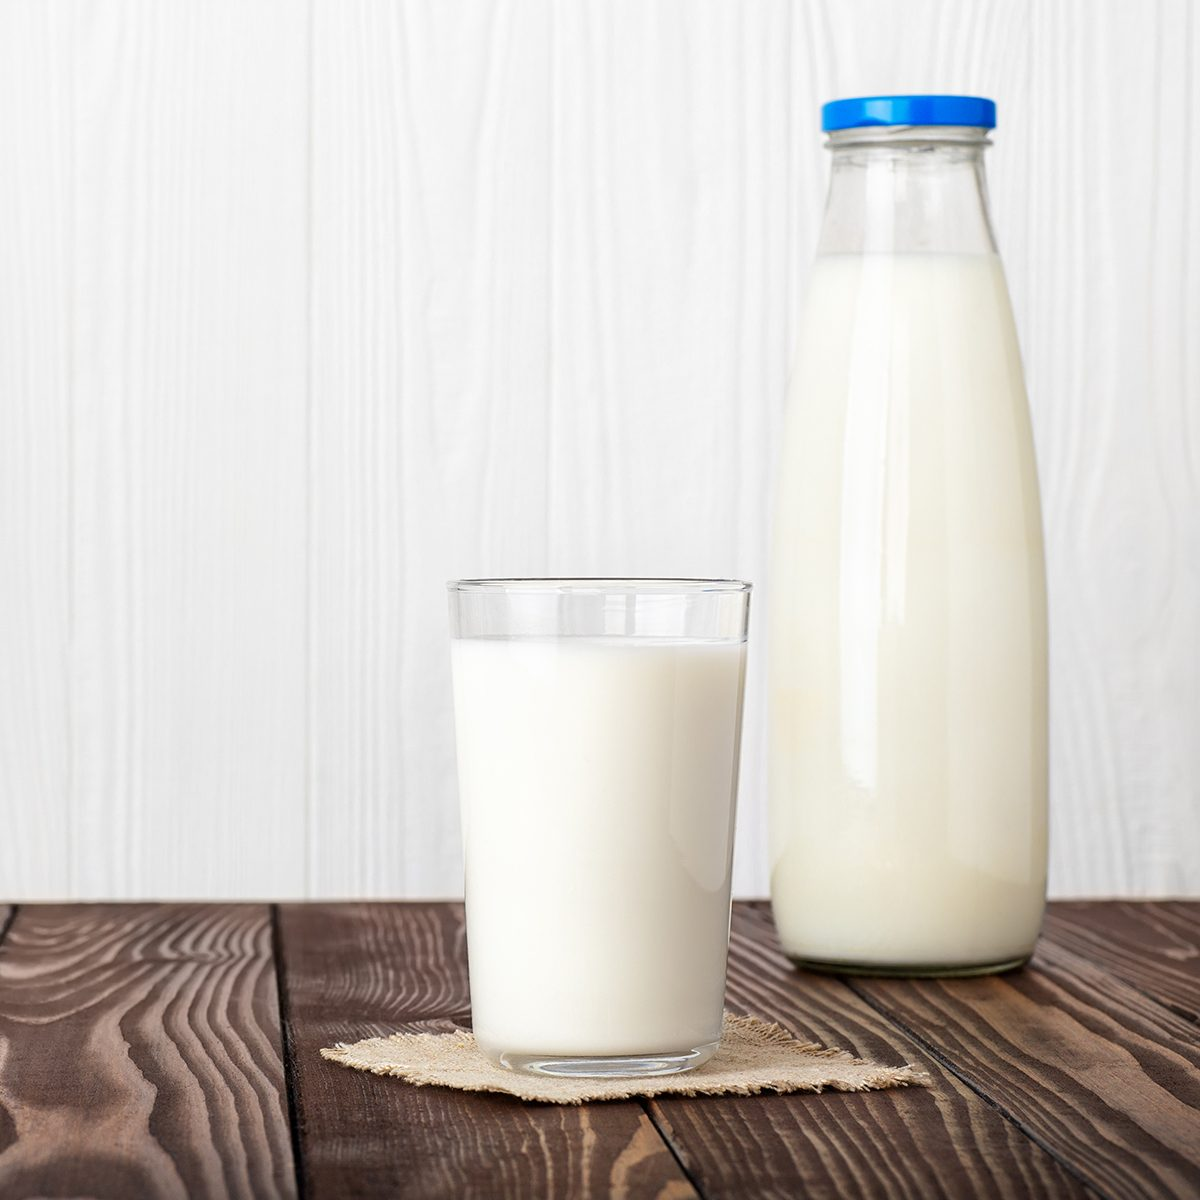 milk in glass and bottle with napkin on wooden table isolated on white background